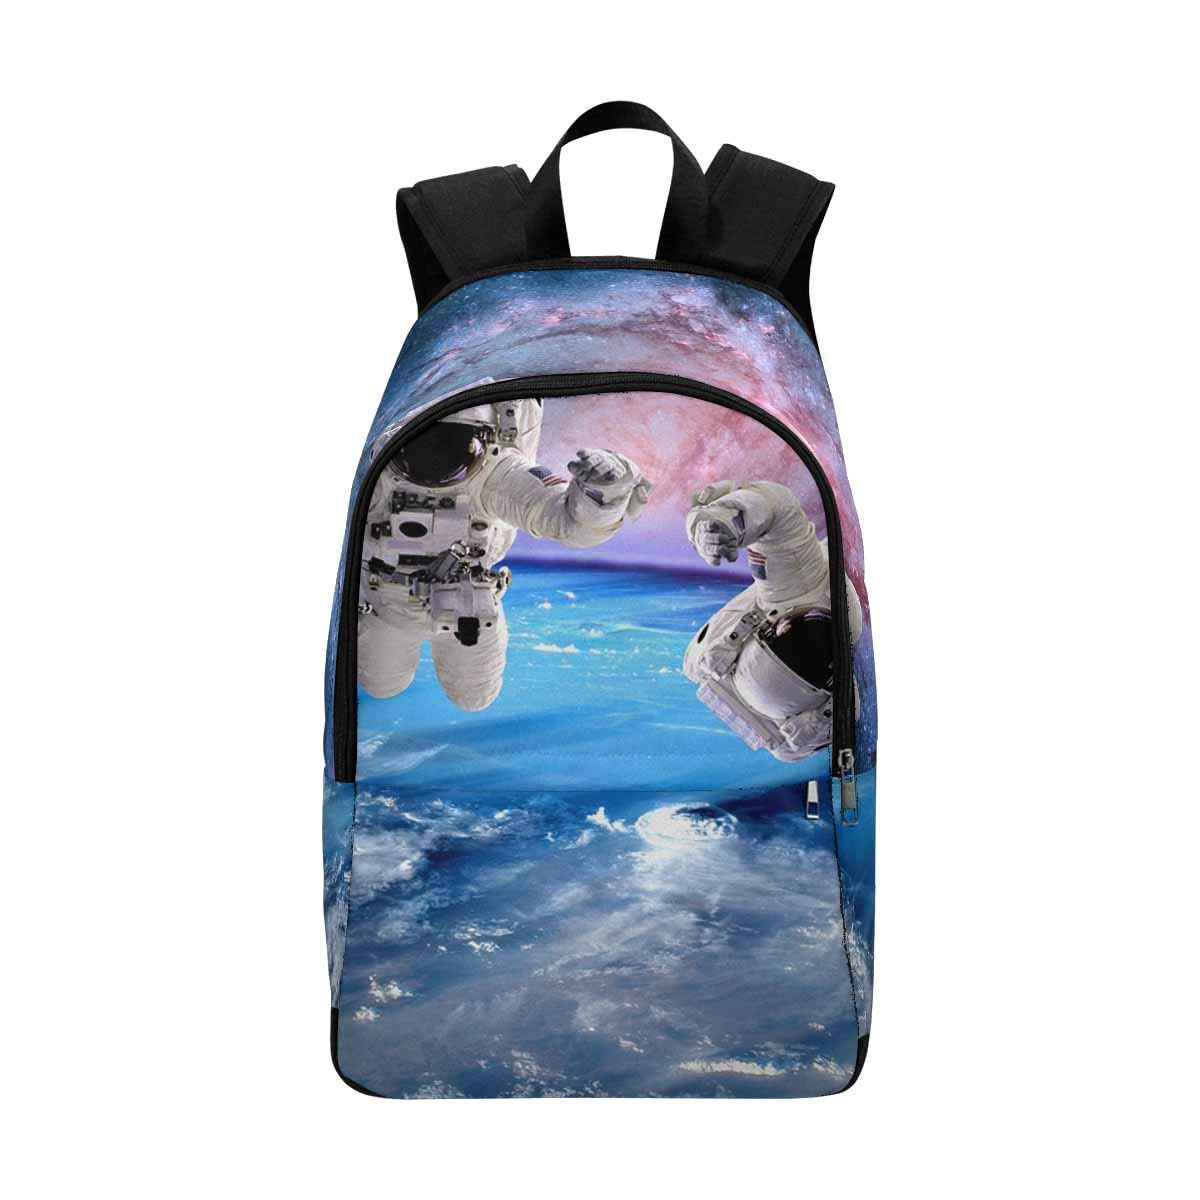 InterestPrint Astronaut Spaceman Outer Space Moon Planet Solar System Universe College Bookbag Shoulder Daypack